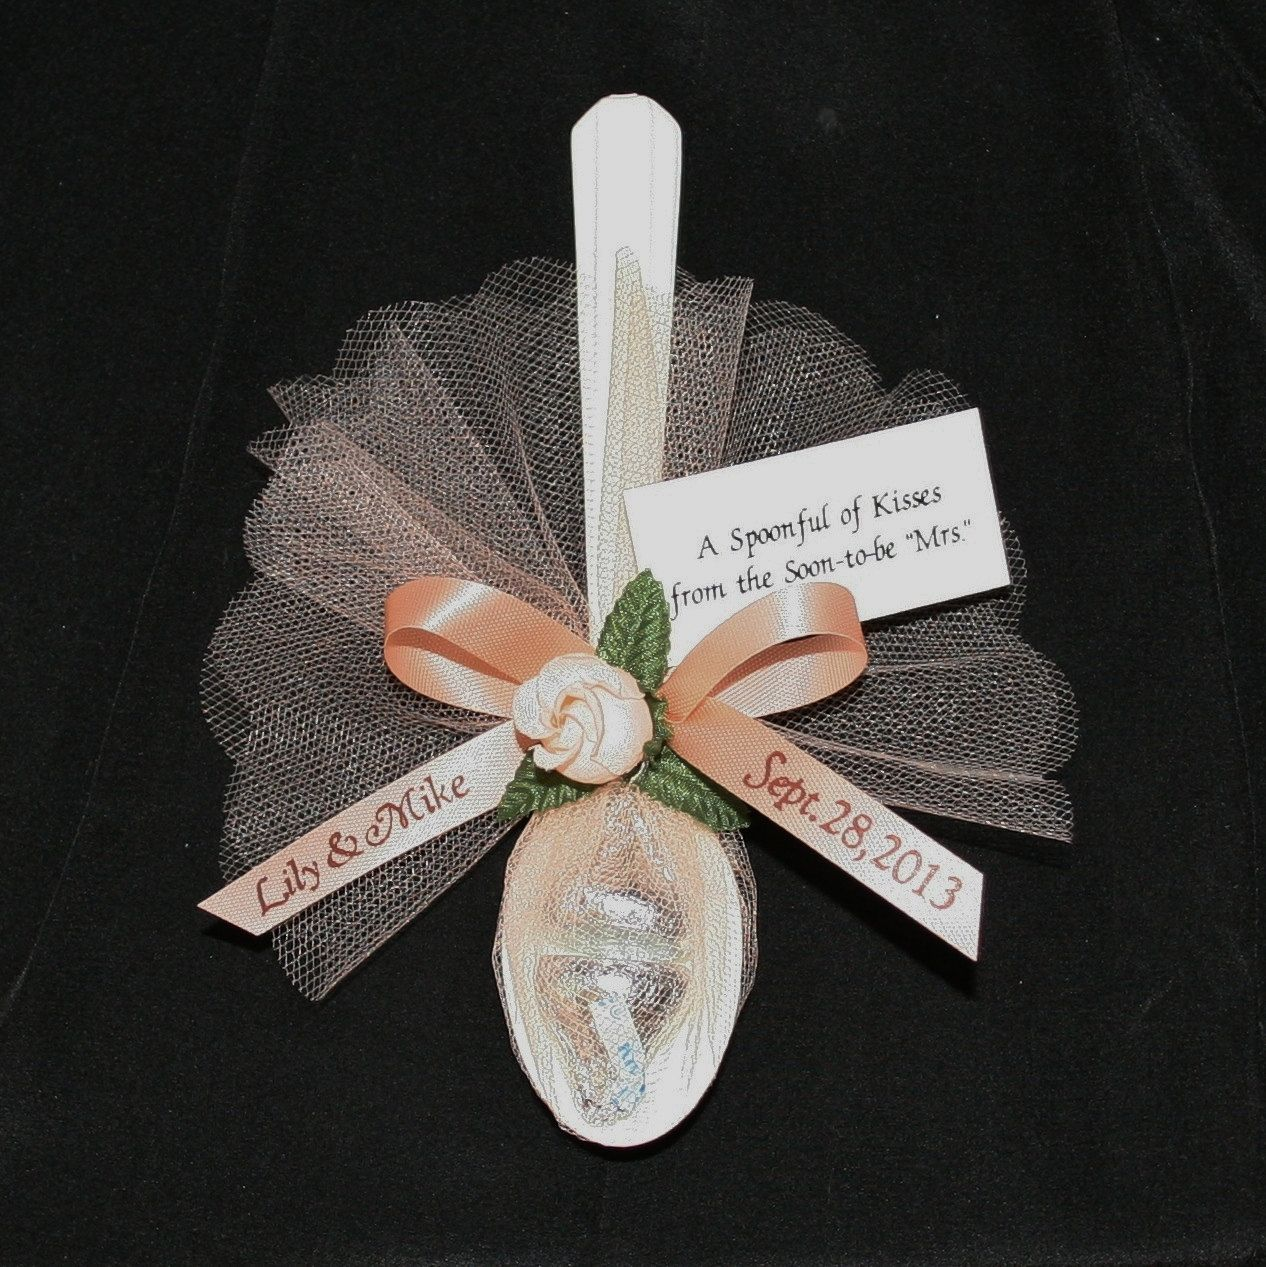 Bridal Shower Favors With Kisses